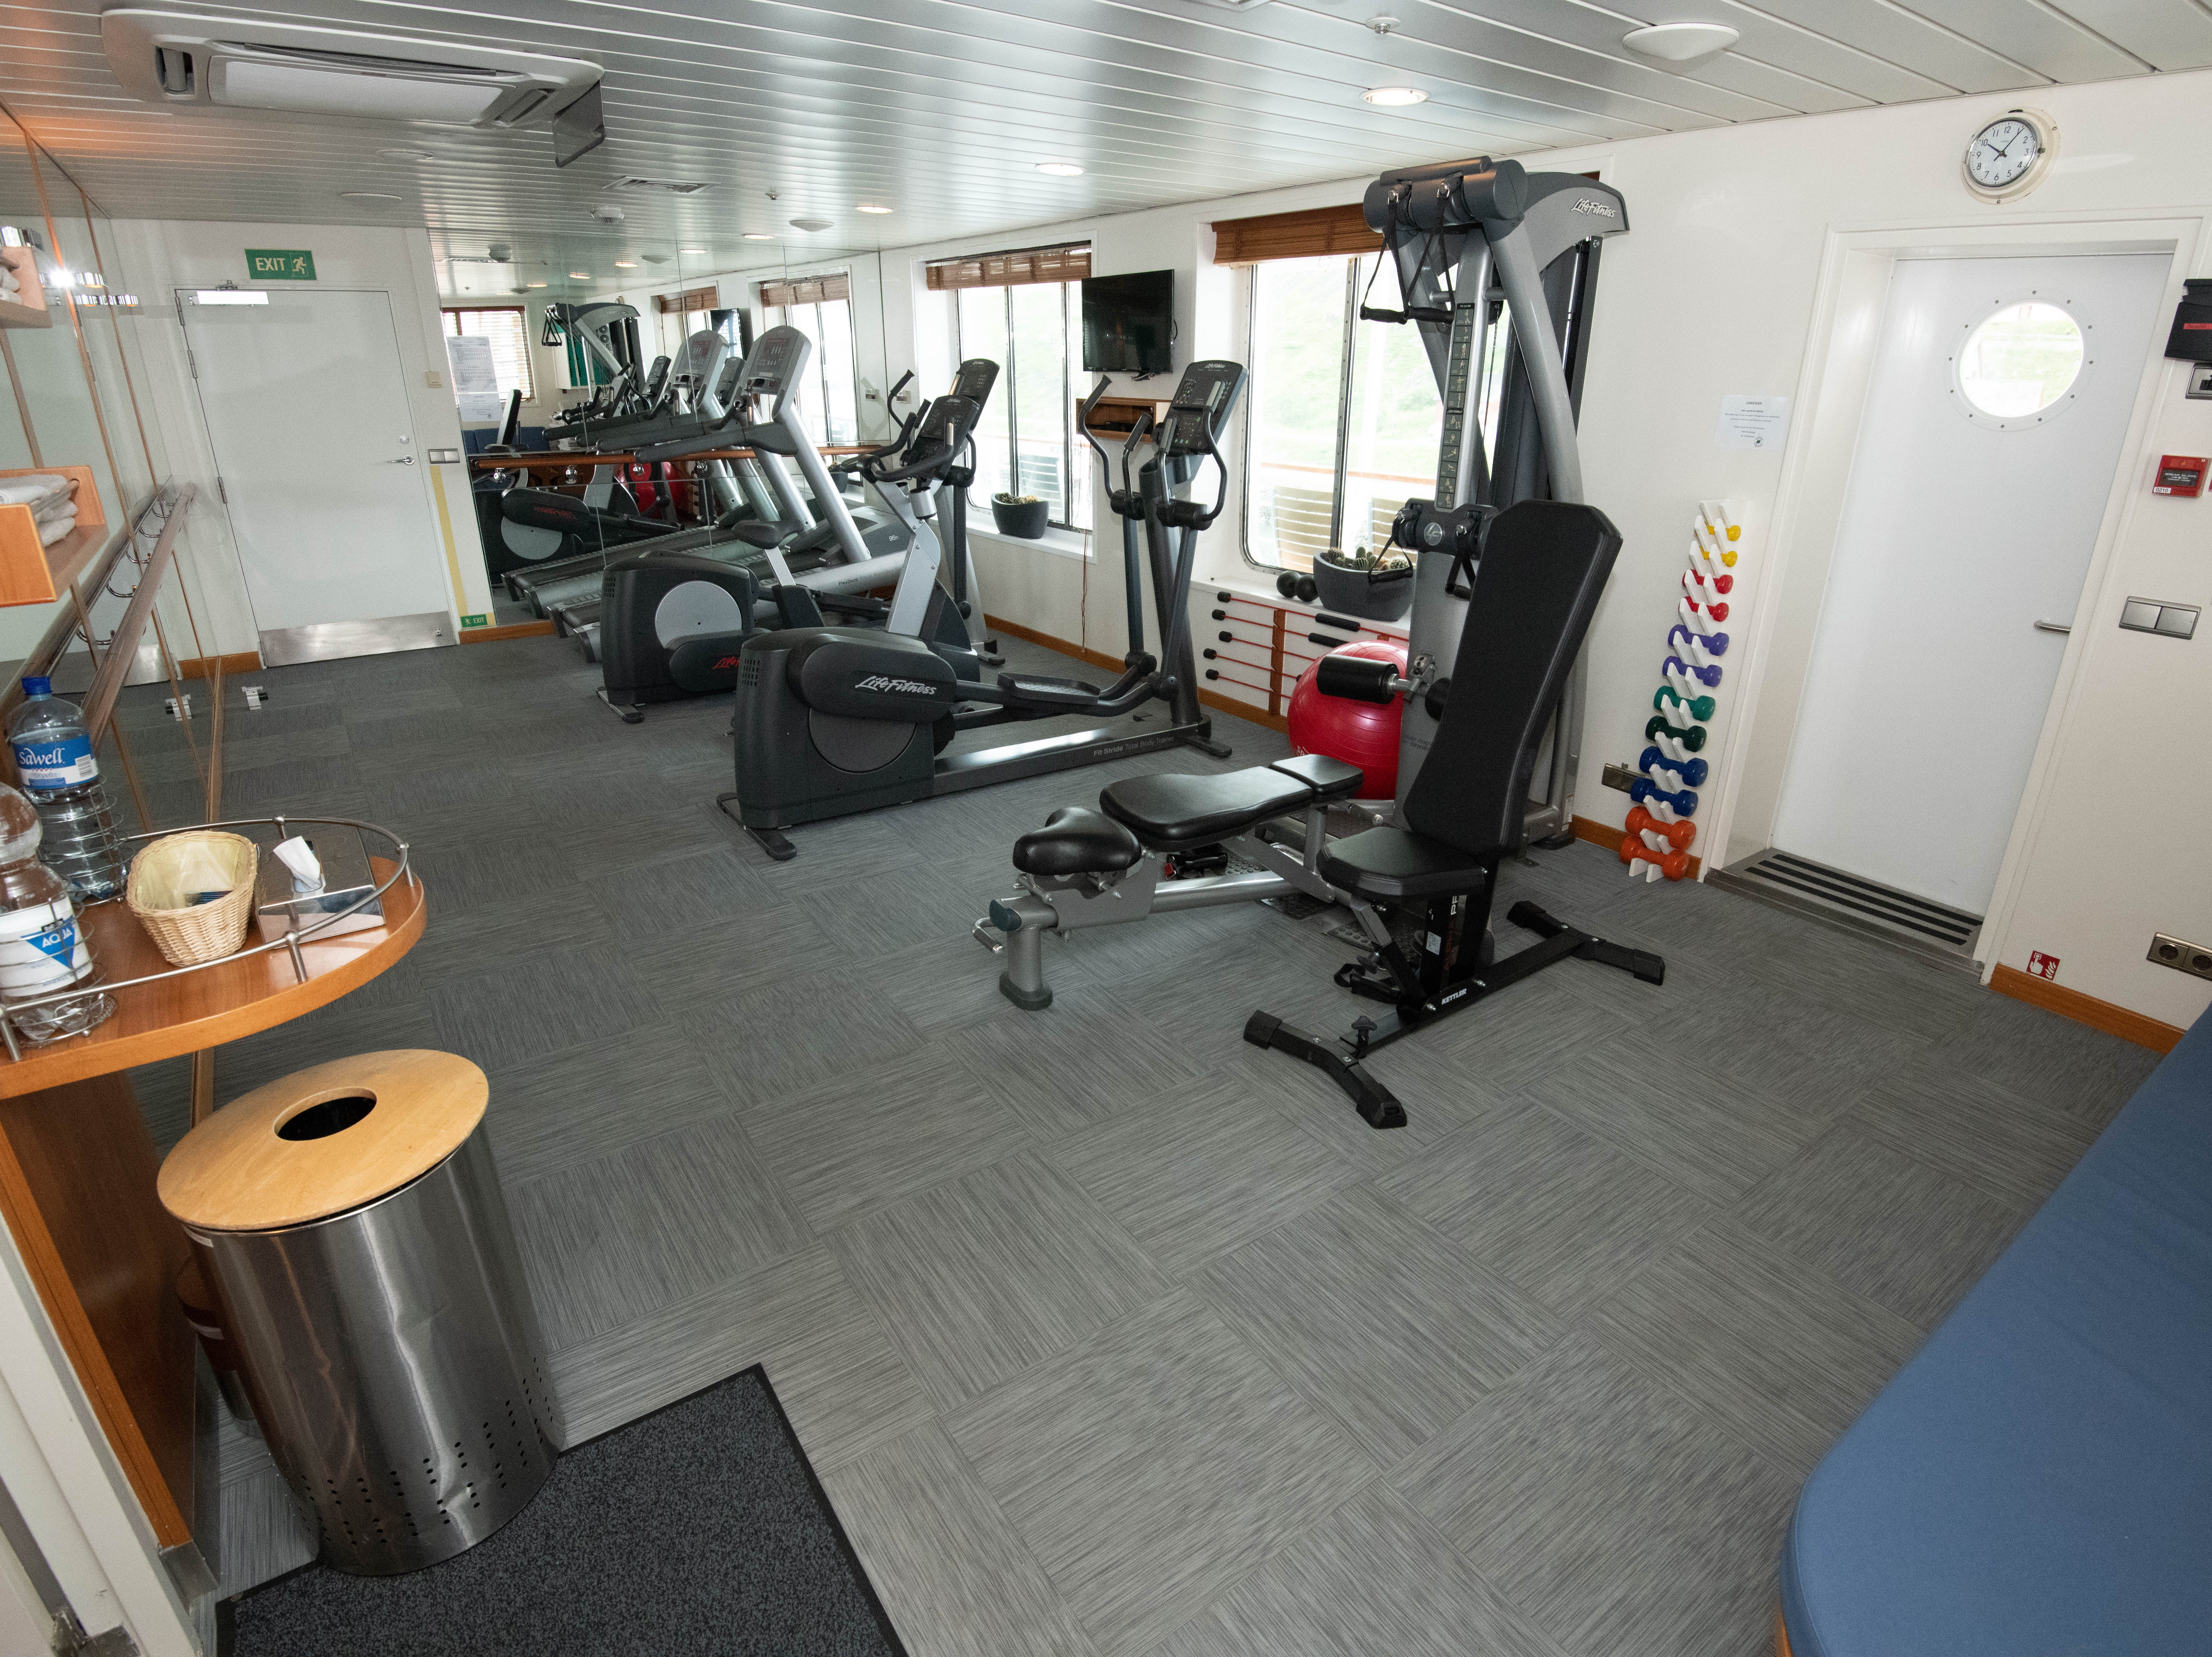 The fitness center has a single weight machine that offers a range of exercise options. There also are a small number of hand weights.